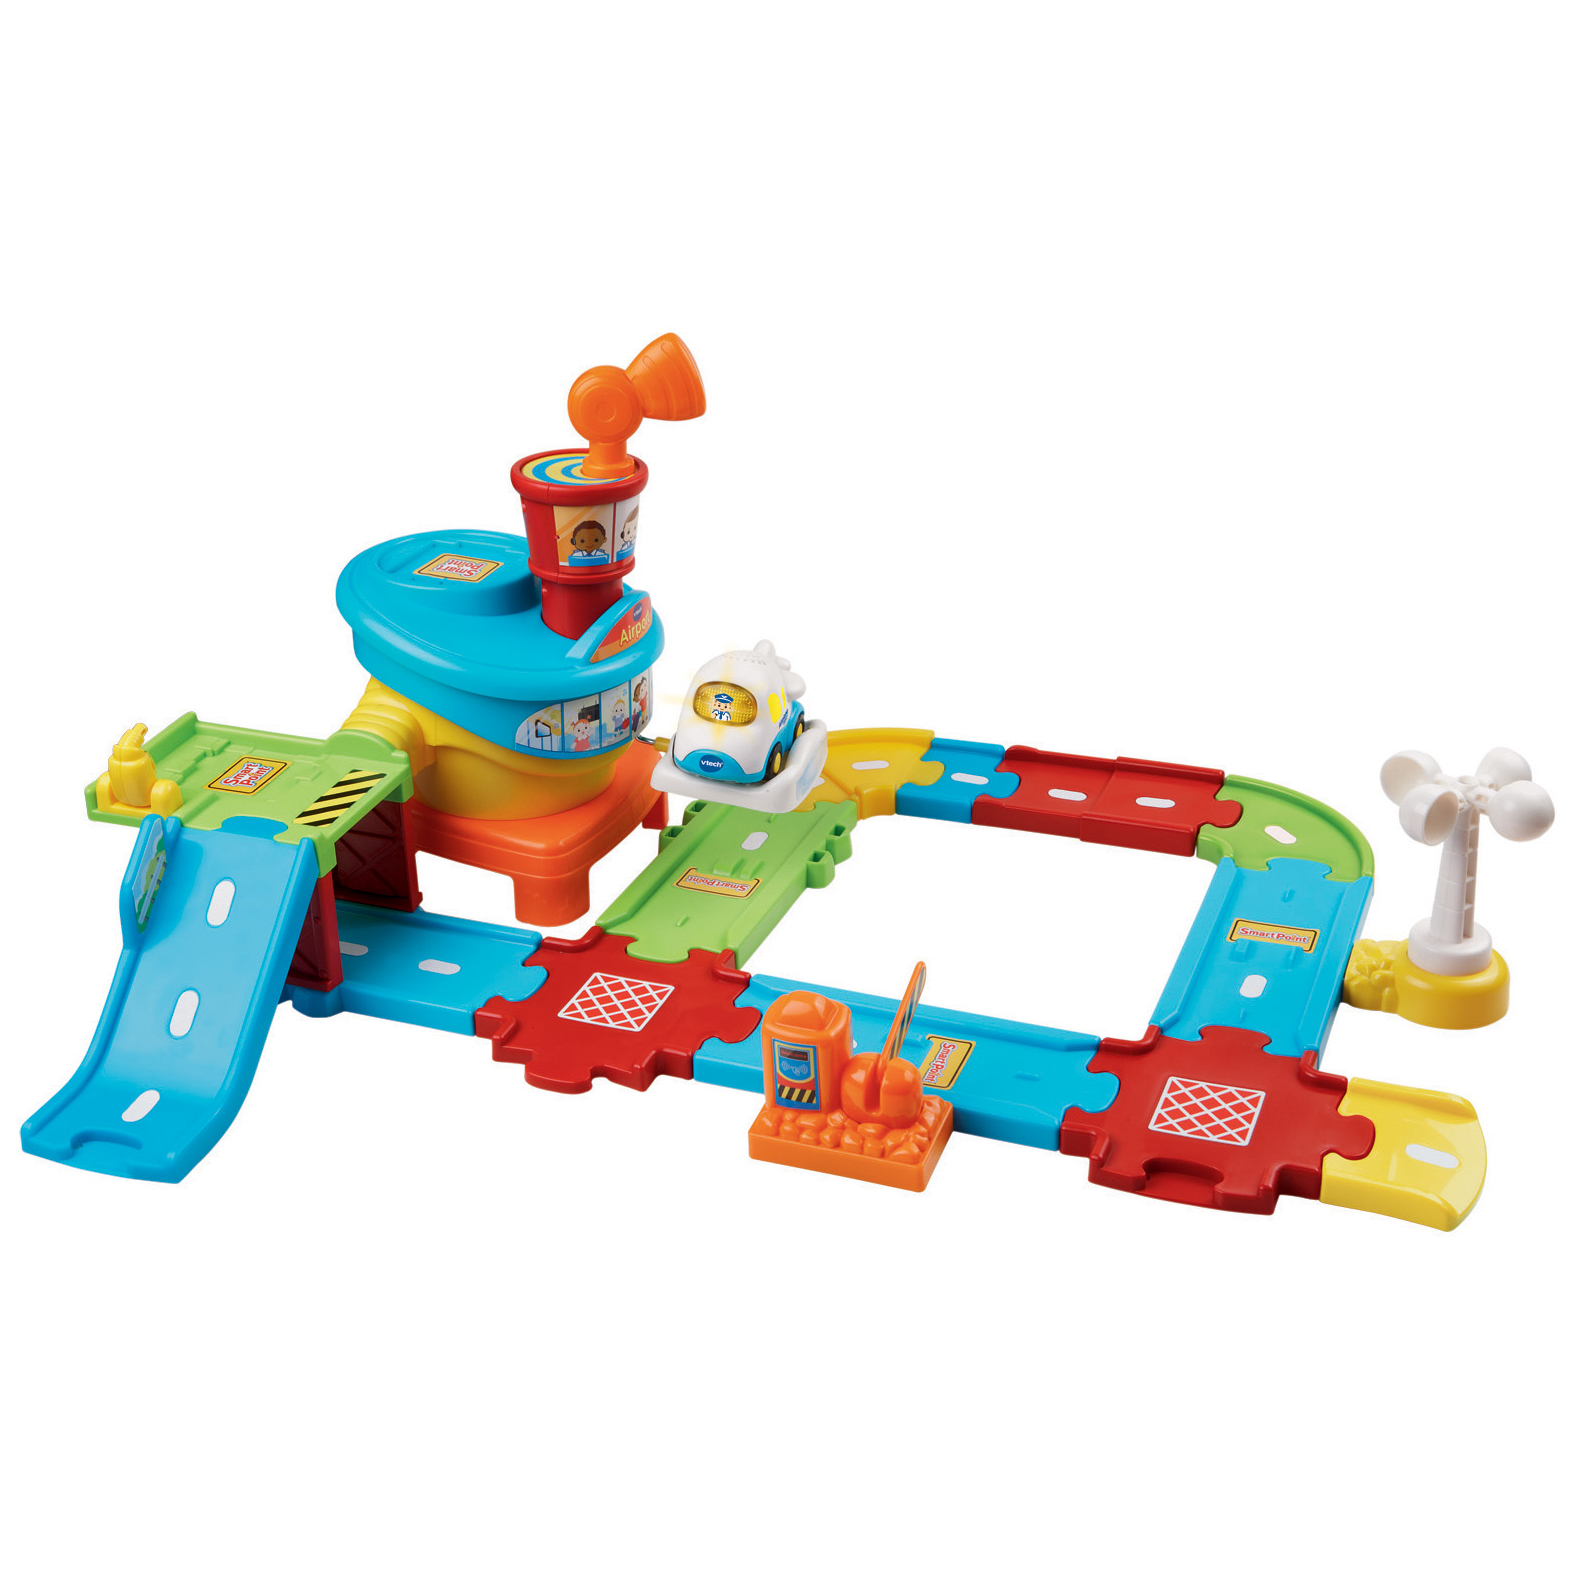 Go! Go! Smart Wheels - Airport Playset